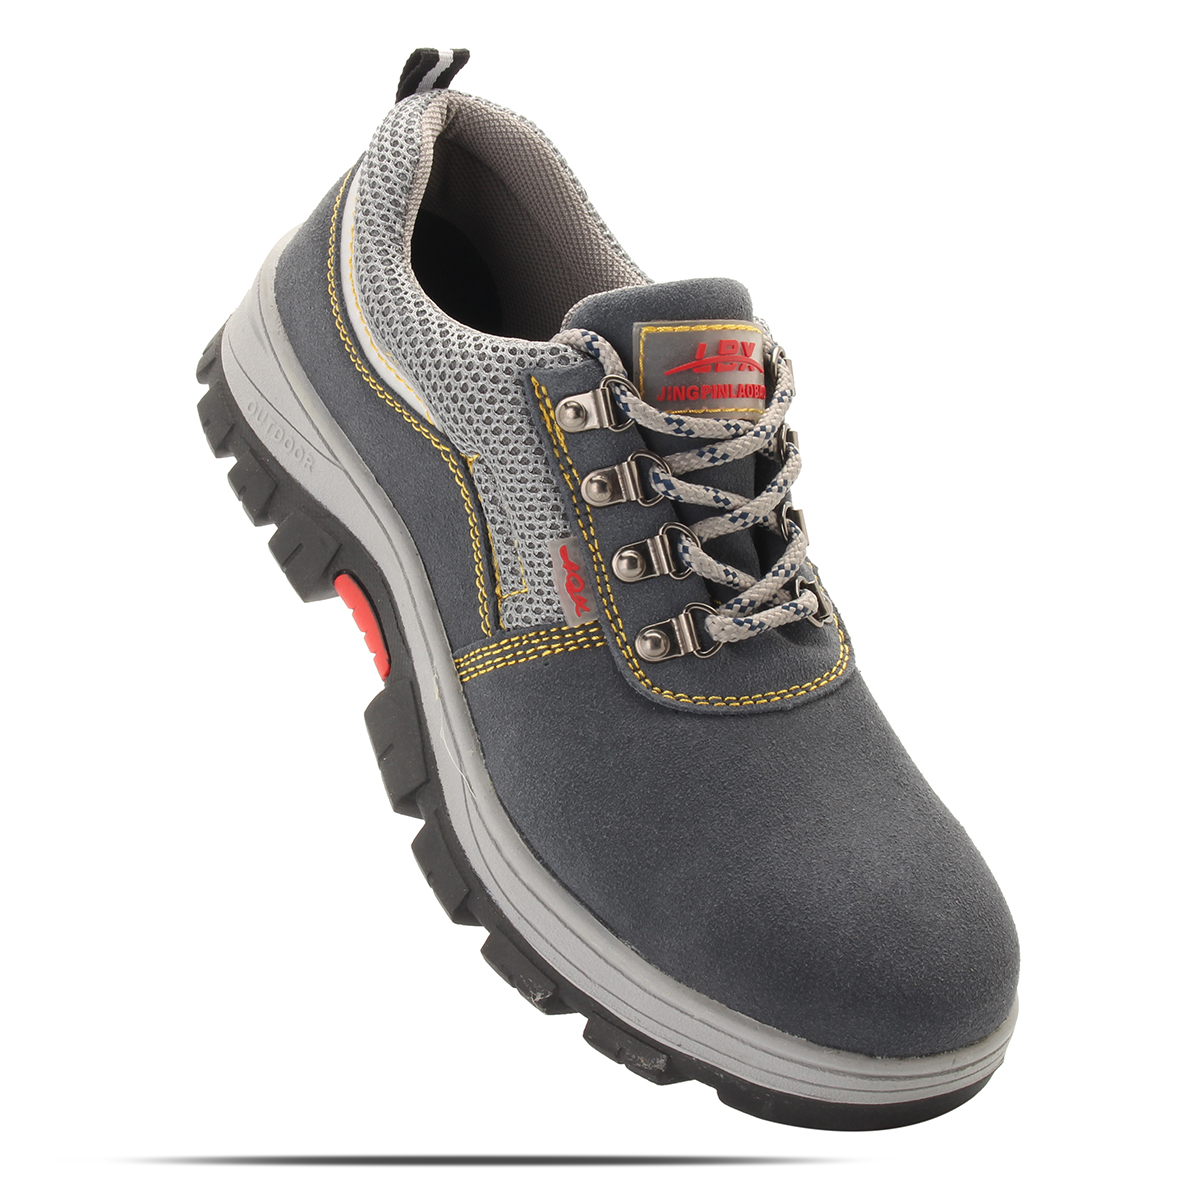 df62f3b4003 TENGOO Outdoor Mens Safety Shoes Summer Breathable Steel Toe Work Boots  Hiking Climbing Working Shoes